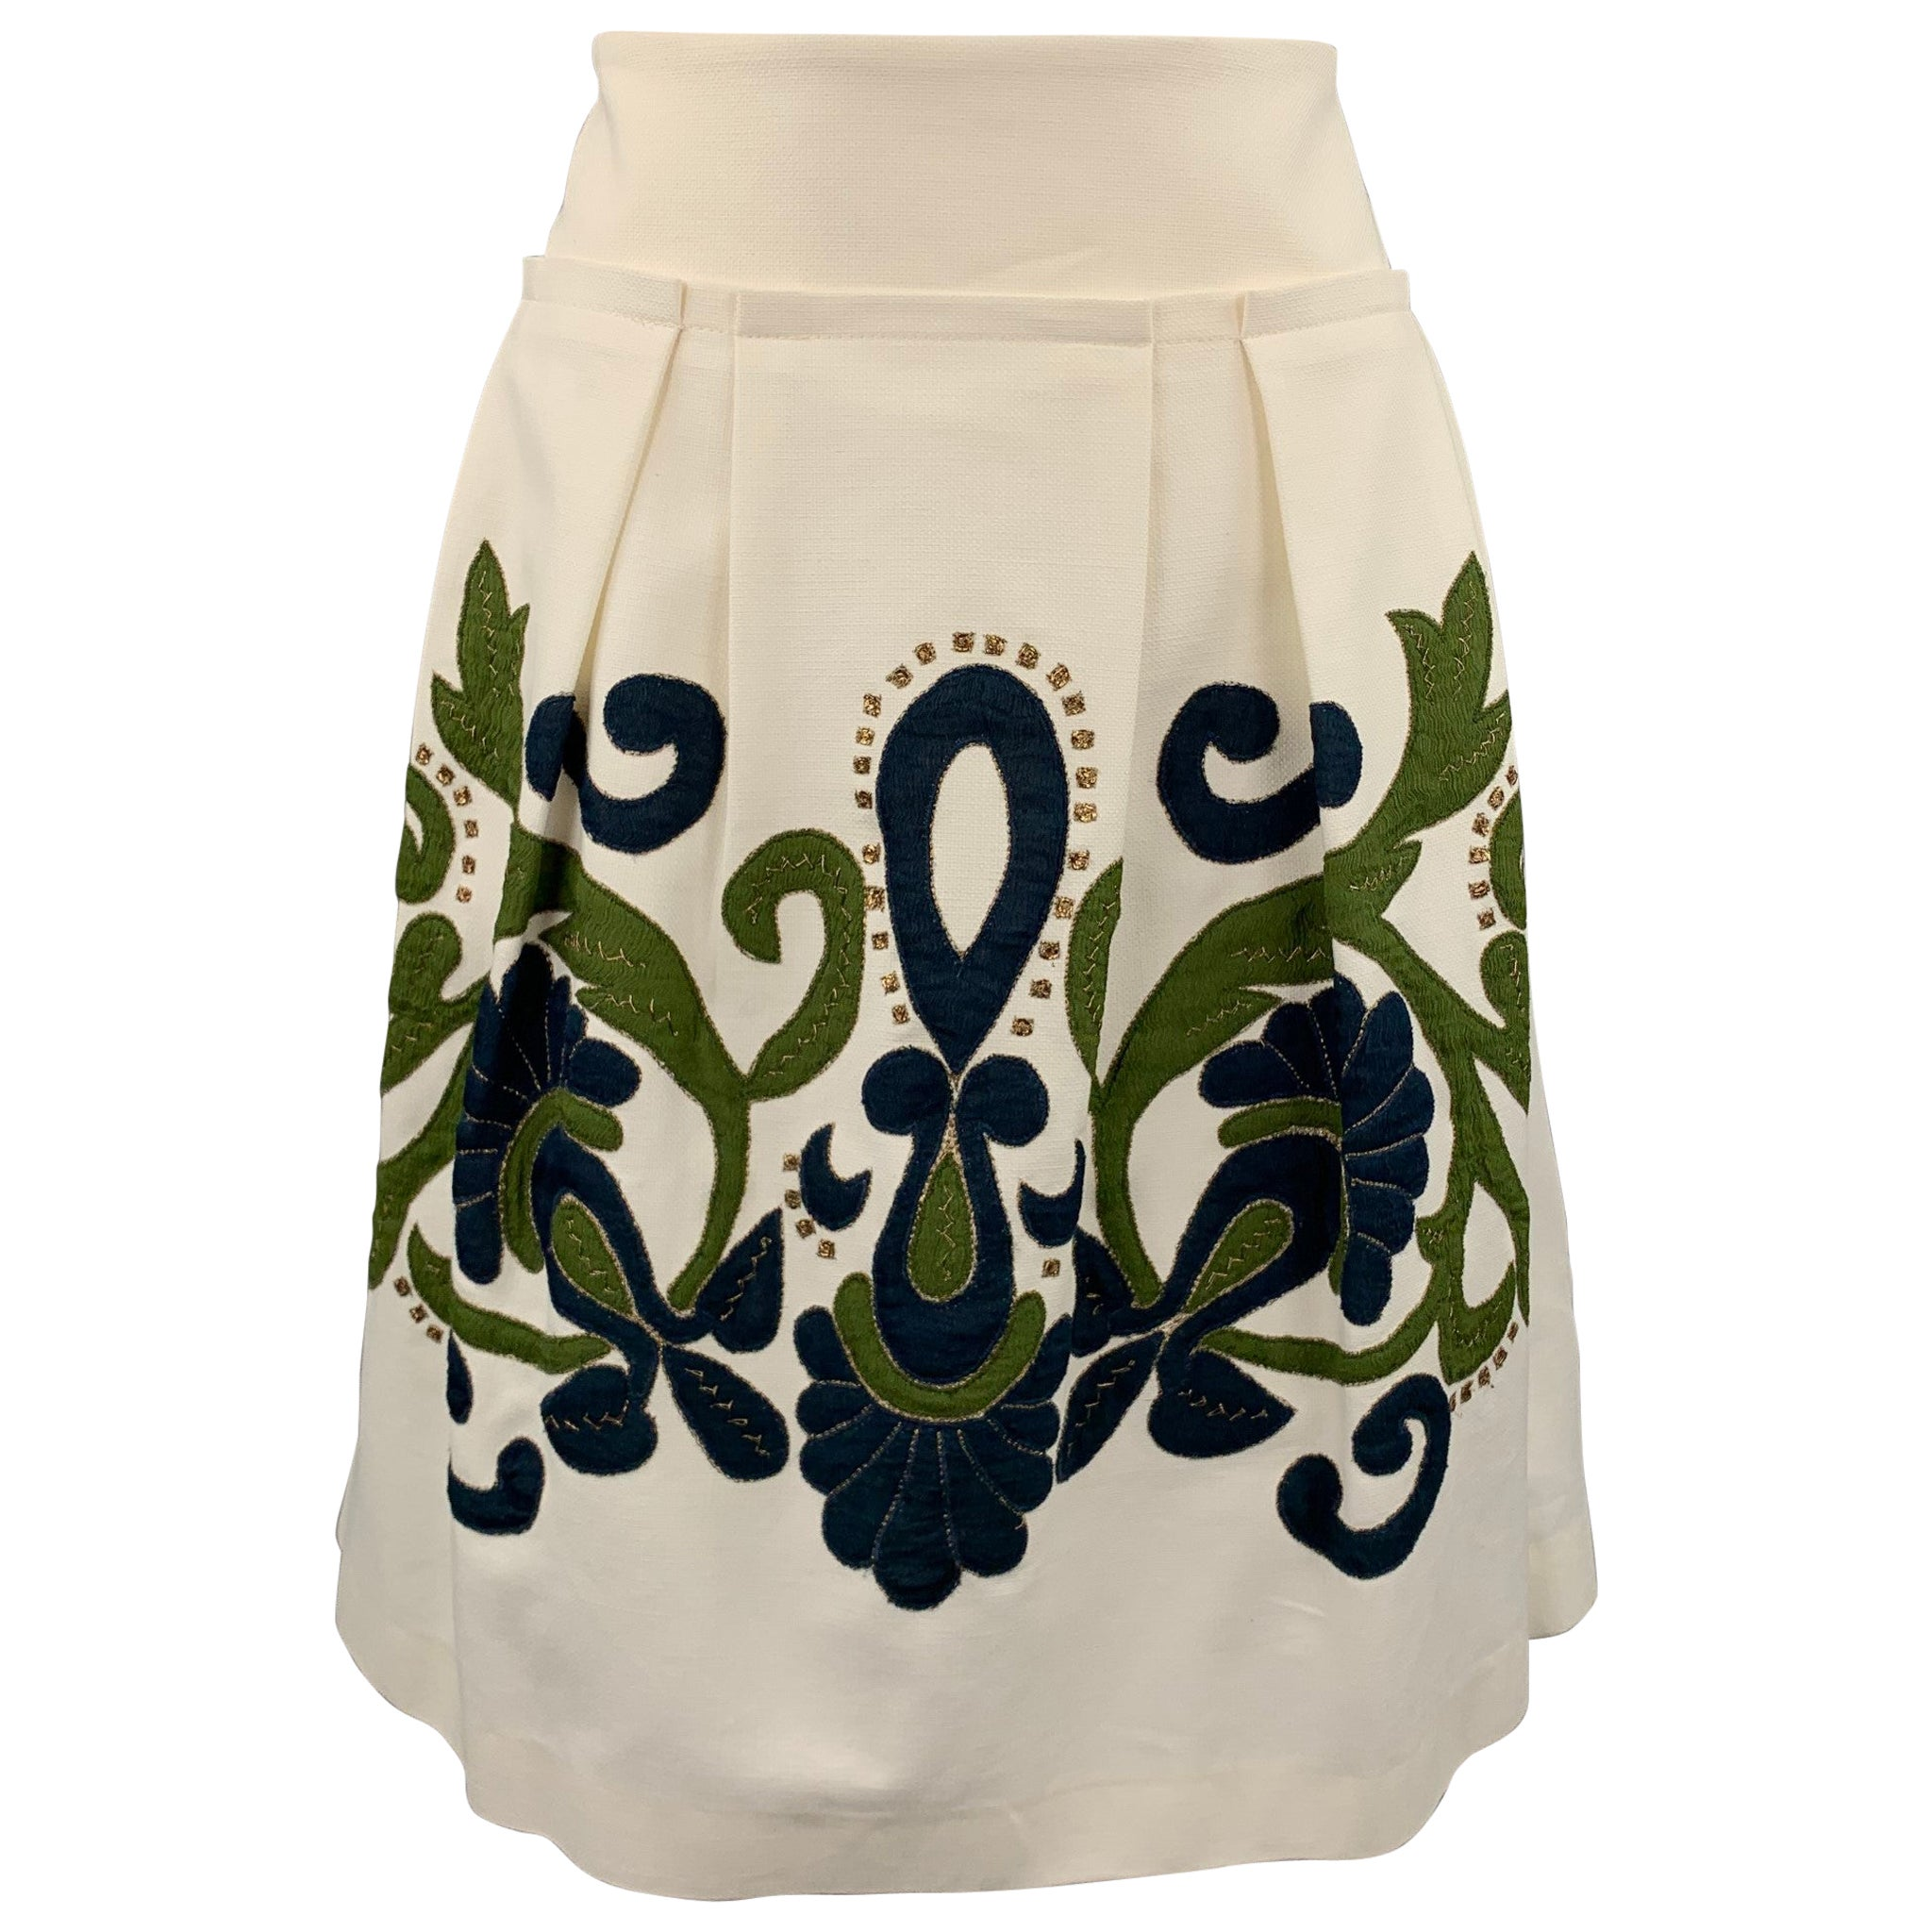 LELA ROSE Size 8 Cream Embroidered Cotton Blend Pleated Skirt